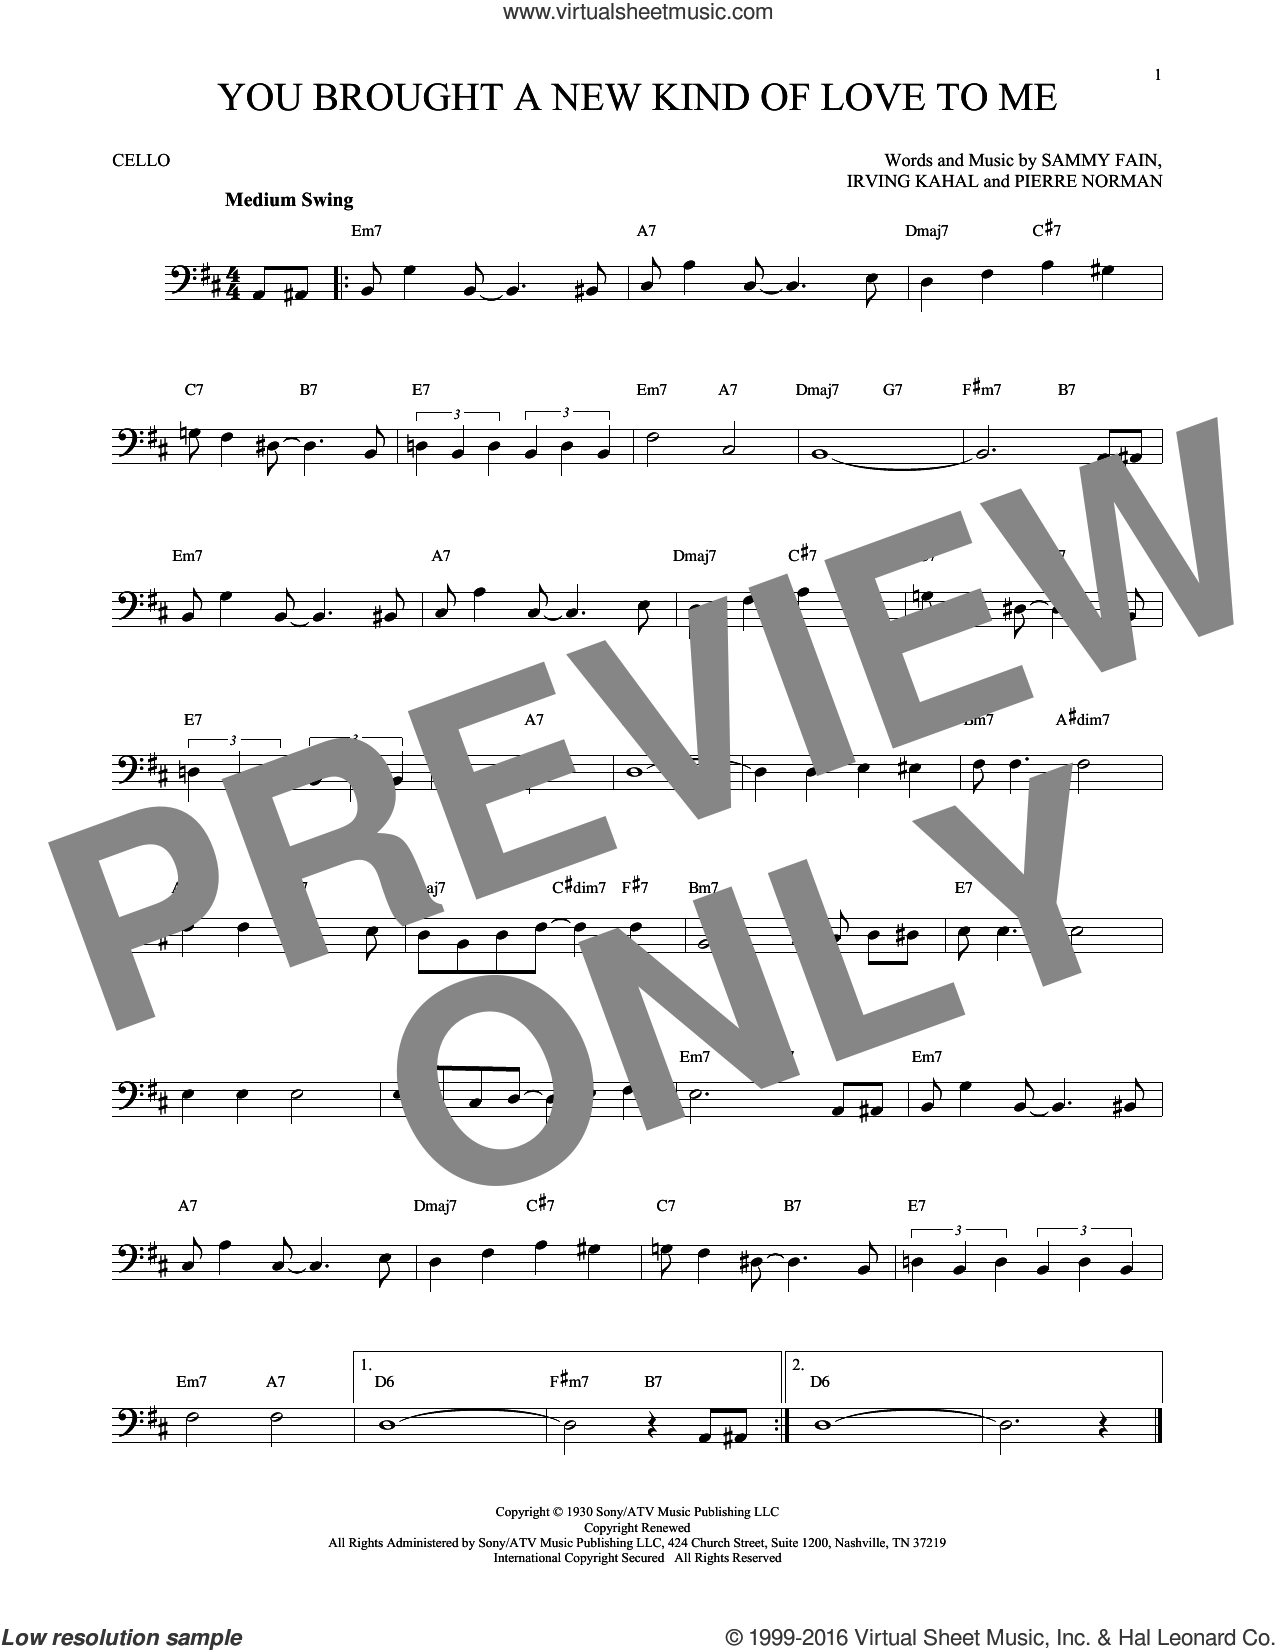 You Brought A New Kind Of Love To Me sheet music for cello solo by Sammy Fain, Scott Hamilton, Irving Kahal and Pierre Norman, intermediate skill level